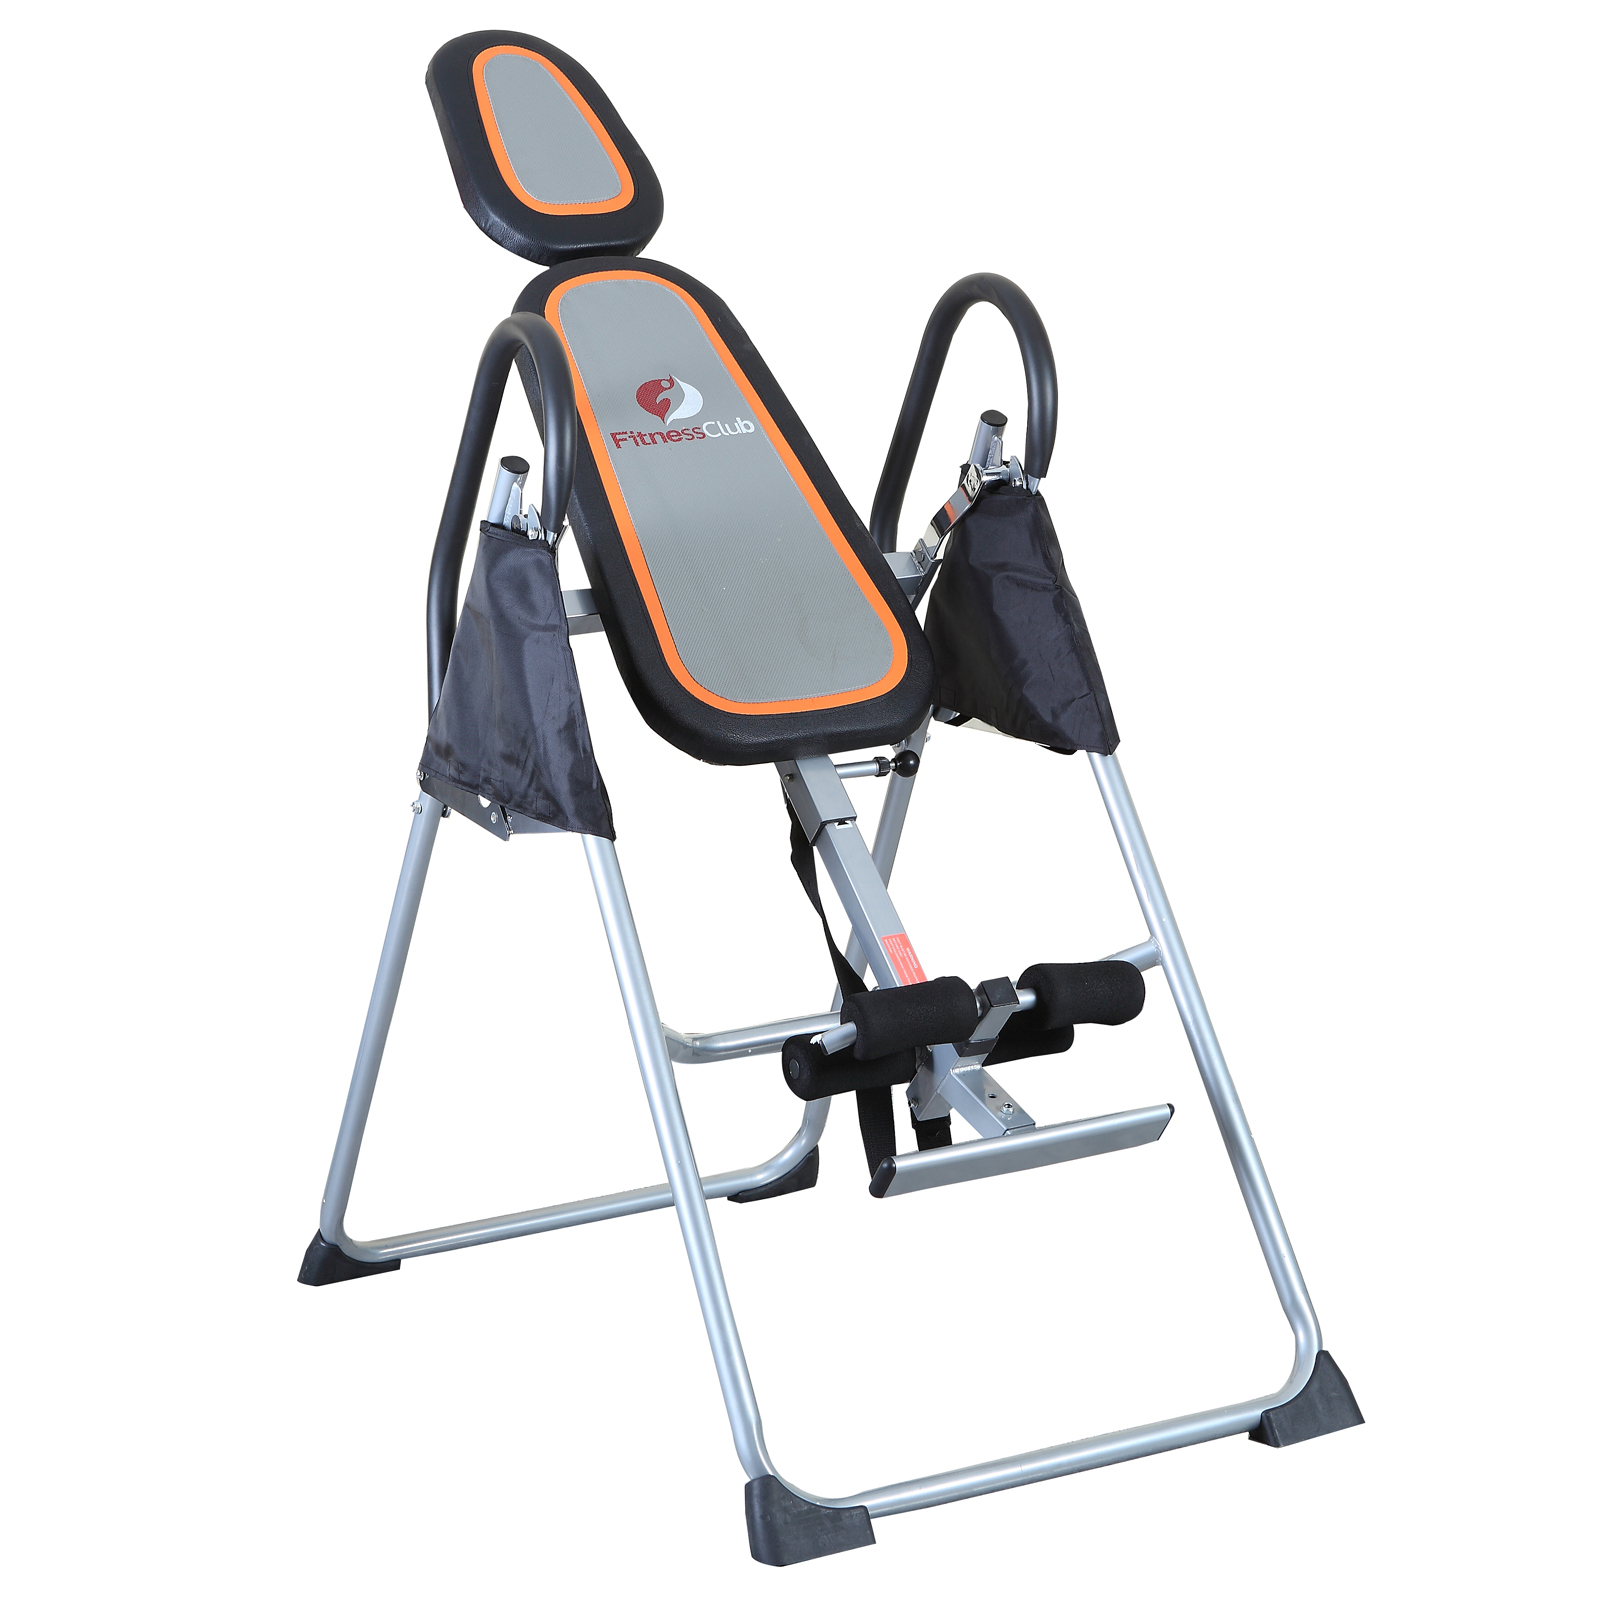 Fitness club inversion table deluxe therapy fitness back for 1201 back therapy inversion table